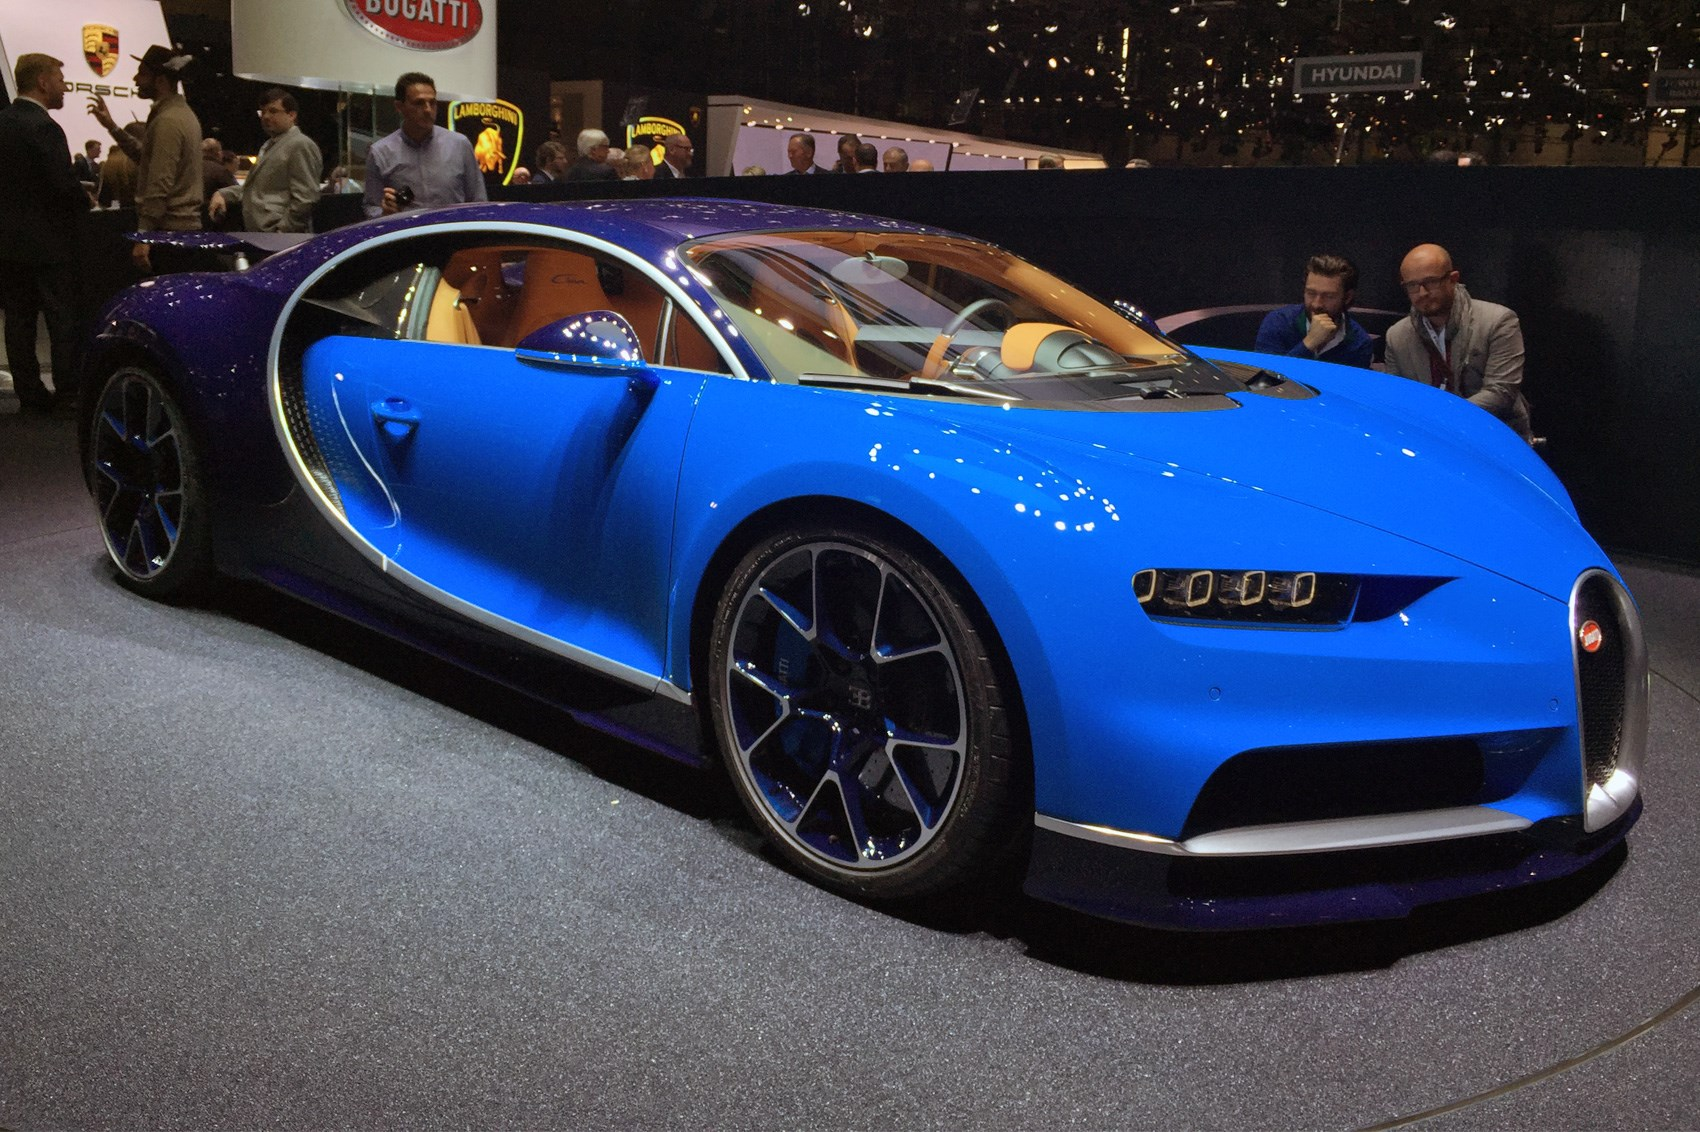 Ultrablogus  Scenic Bugatti Chiron Revealed At Geneva  The World Has A New  With Fascinating Bugatti Chiron Revealed At Geneva  The World Has A New Fastest Production Car By Car Magazine With Beautiful  Avalon Interior Also Where To Get Car Interior Redone In Addition  Honda Pilot Interior Pictures And  Cadillac Escalade Interior As Well As  Buick Lesabre Interior Additionally Car Interior Glass Cleaner From Carmagazinecouk With Ultrablogus  Fascinating Bugatti Chiron Revealed At Geneva  The World Has A New  With Beautiful Bugatti Chiron Revealed At Geneva  The World Has A New Fastest Production Car By Car Magazine And Scenic  Avalon Interior Also Where To Get Car Interior Redone In Addition  Honda Pilot Interior Pictures From Carmagazinecouk